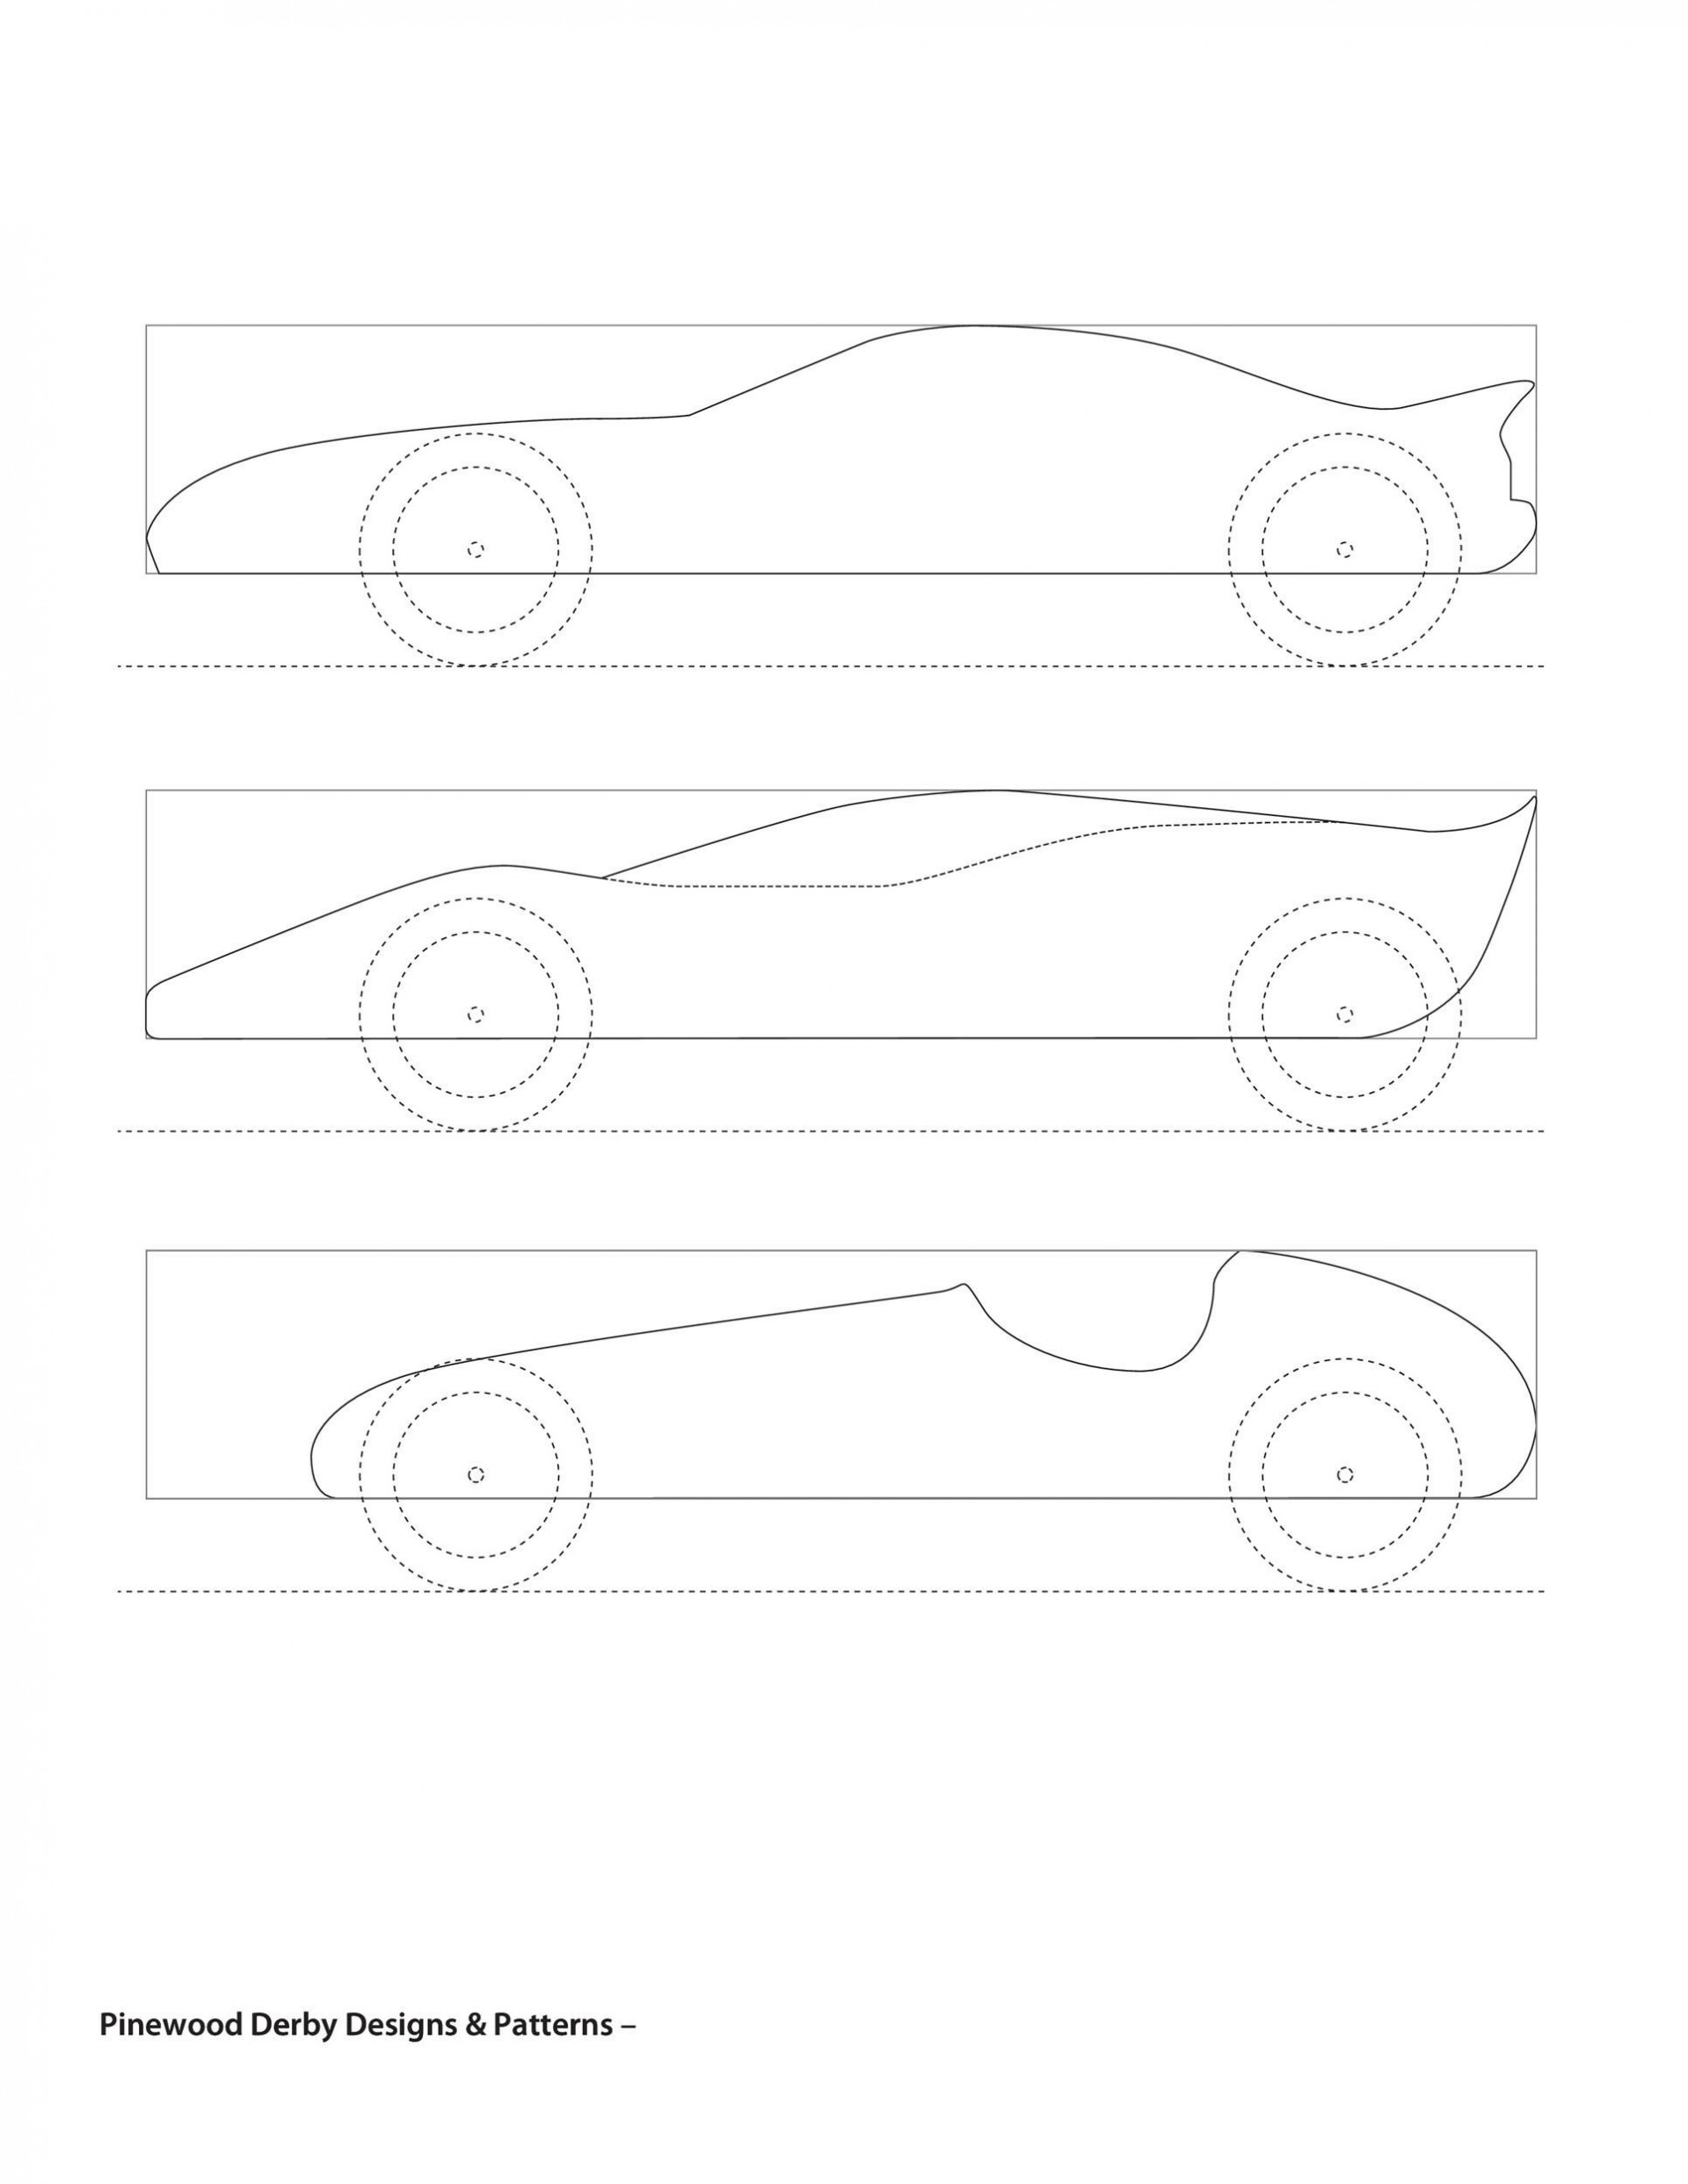 008 Dreaded Fast Pinewood Derby Car Template Image  Templates Design Fastest1920